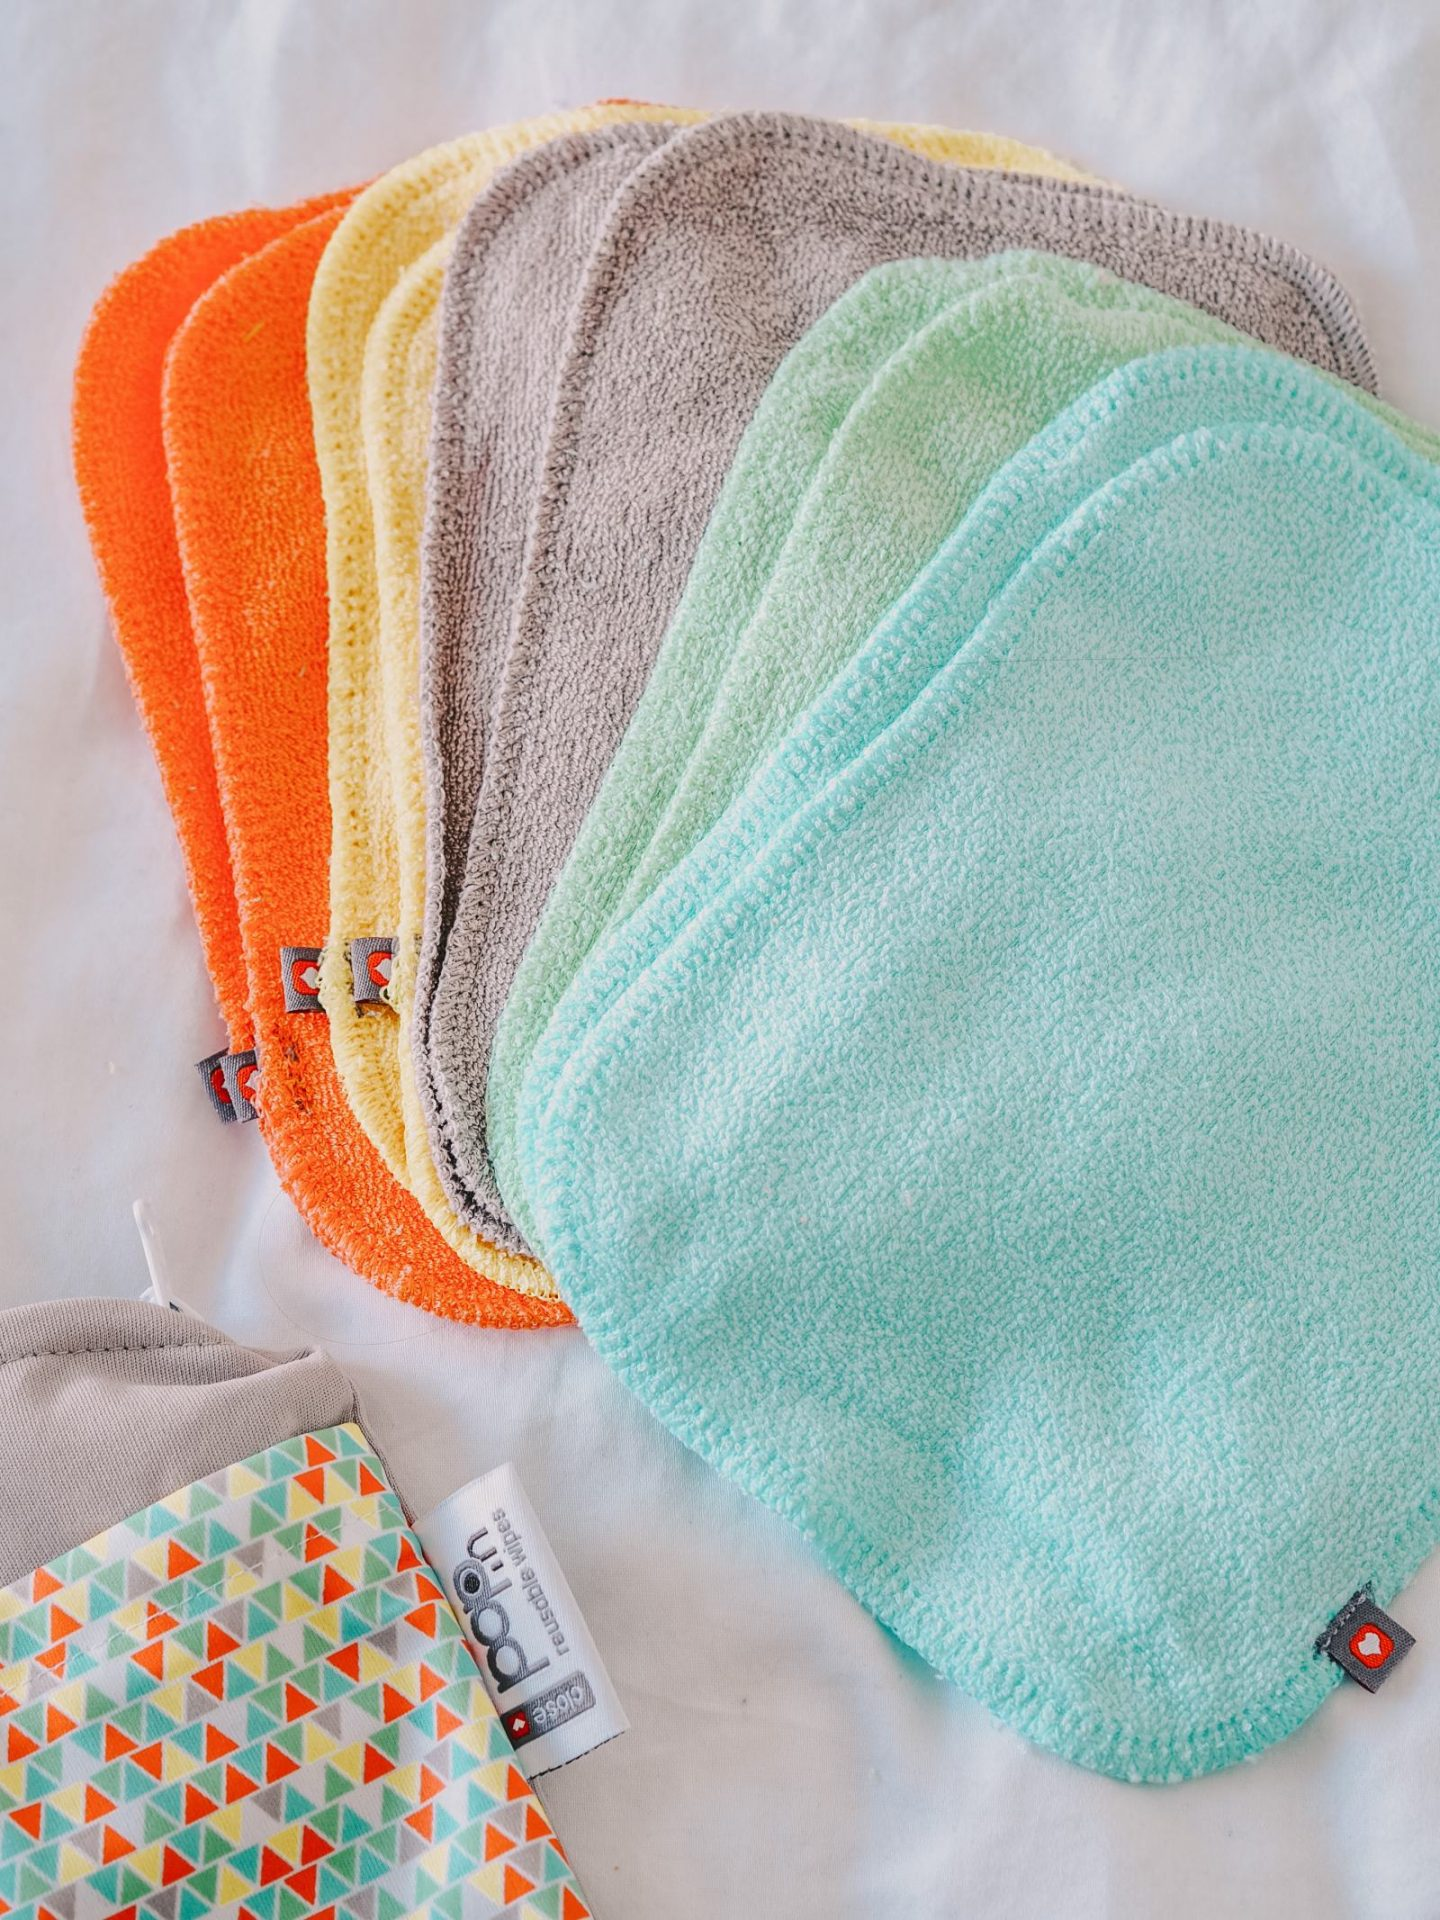 Close Parent Pop-In Cloth Nappy Review Puffin Bio-Laminate reusable wipes